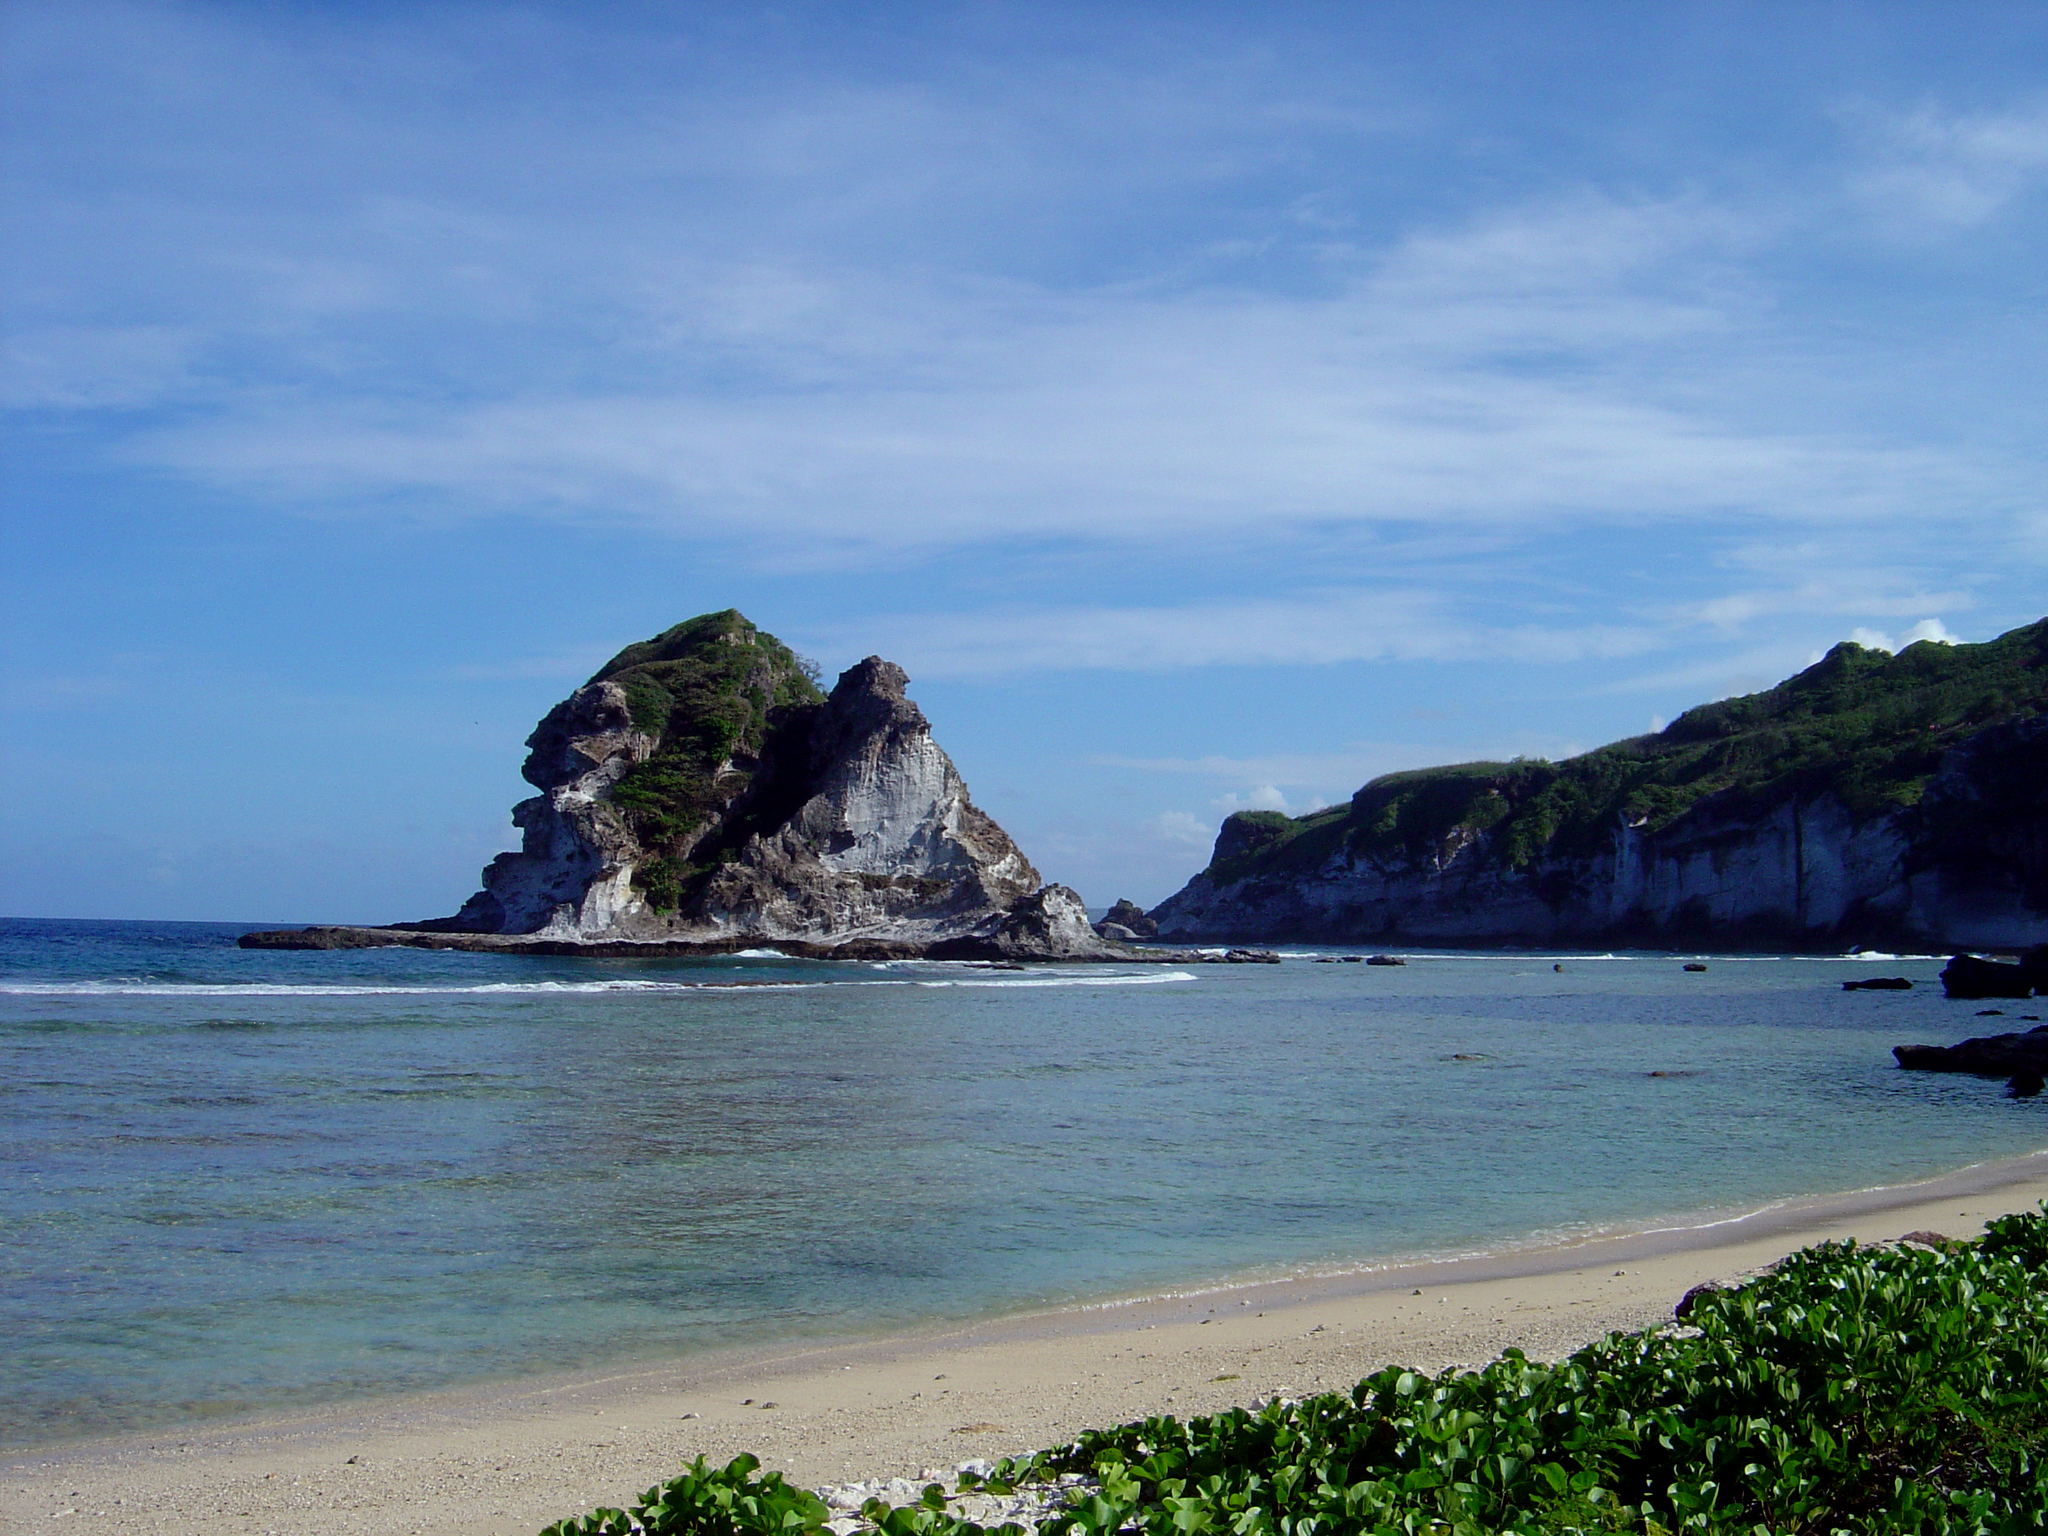 A view of Bird Island, Saipan, CNMI